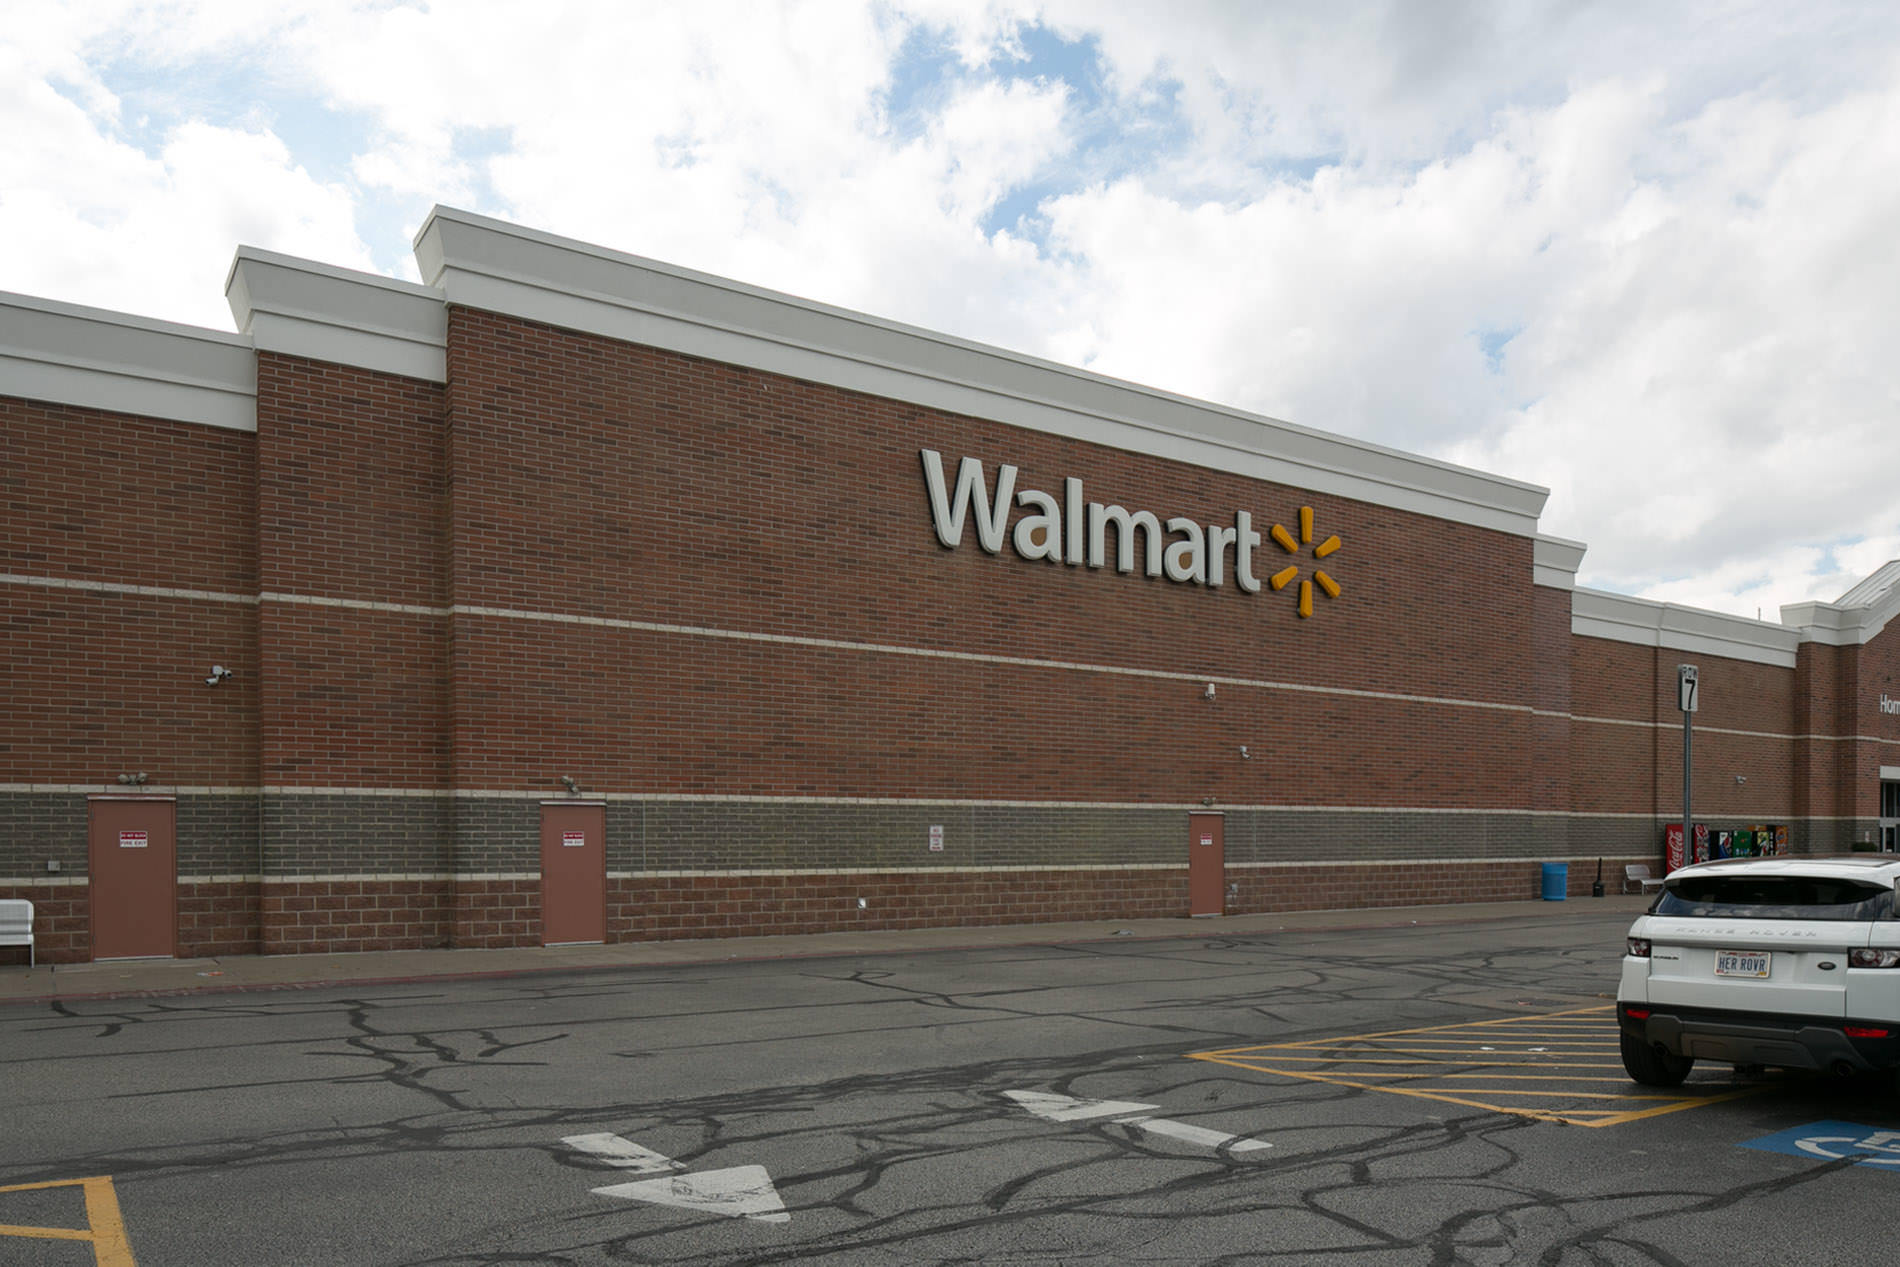 Wal-Mart Before Exterior Photograph